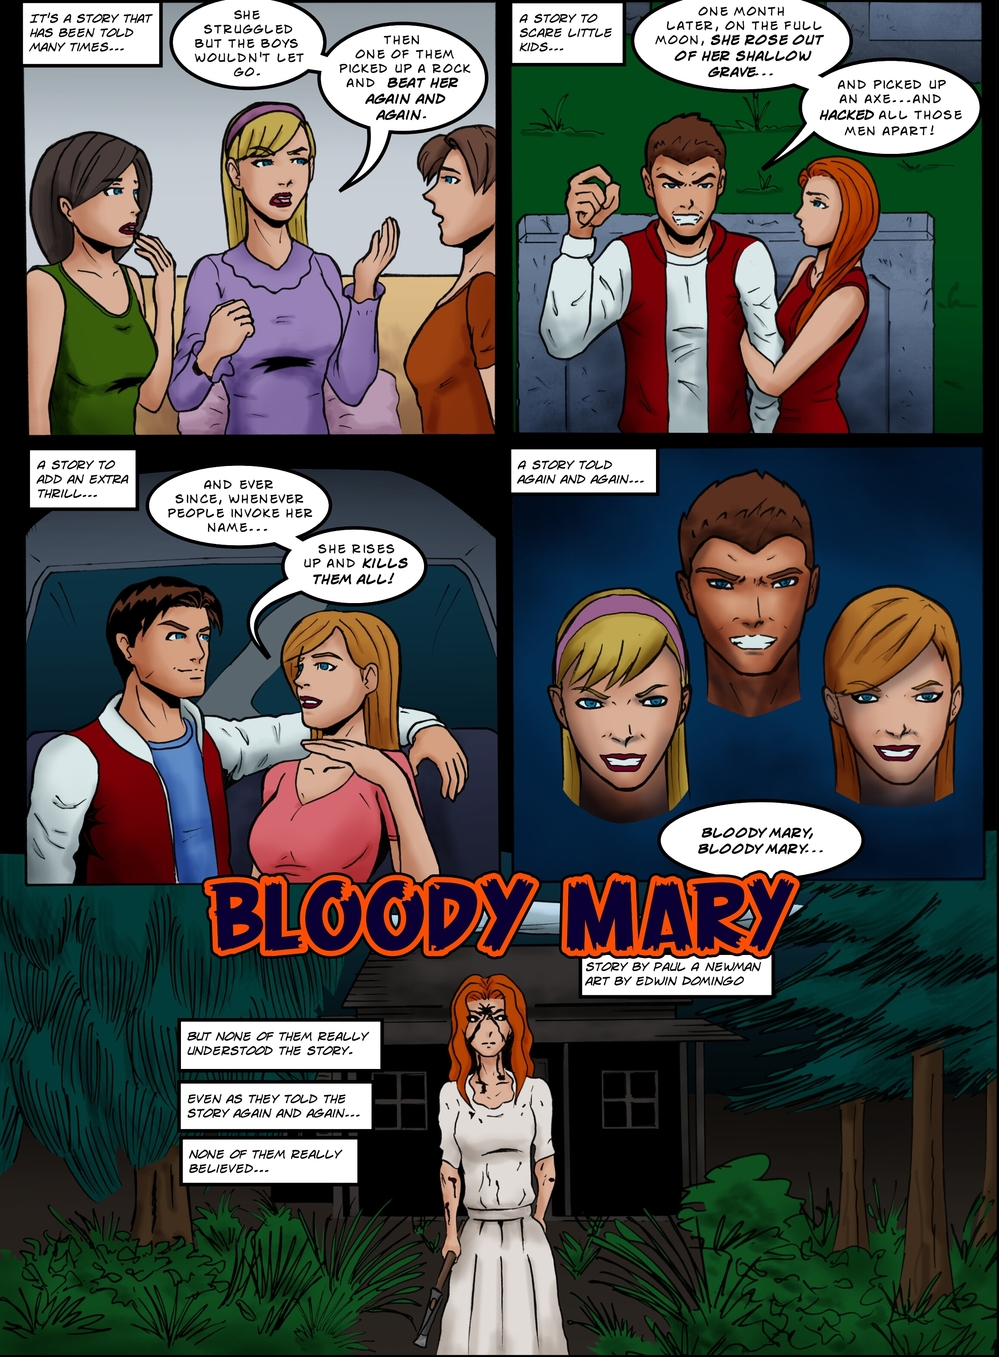 BLOODY MARY page 1 -- story 25 in The Book of Lies